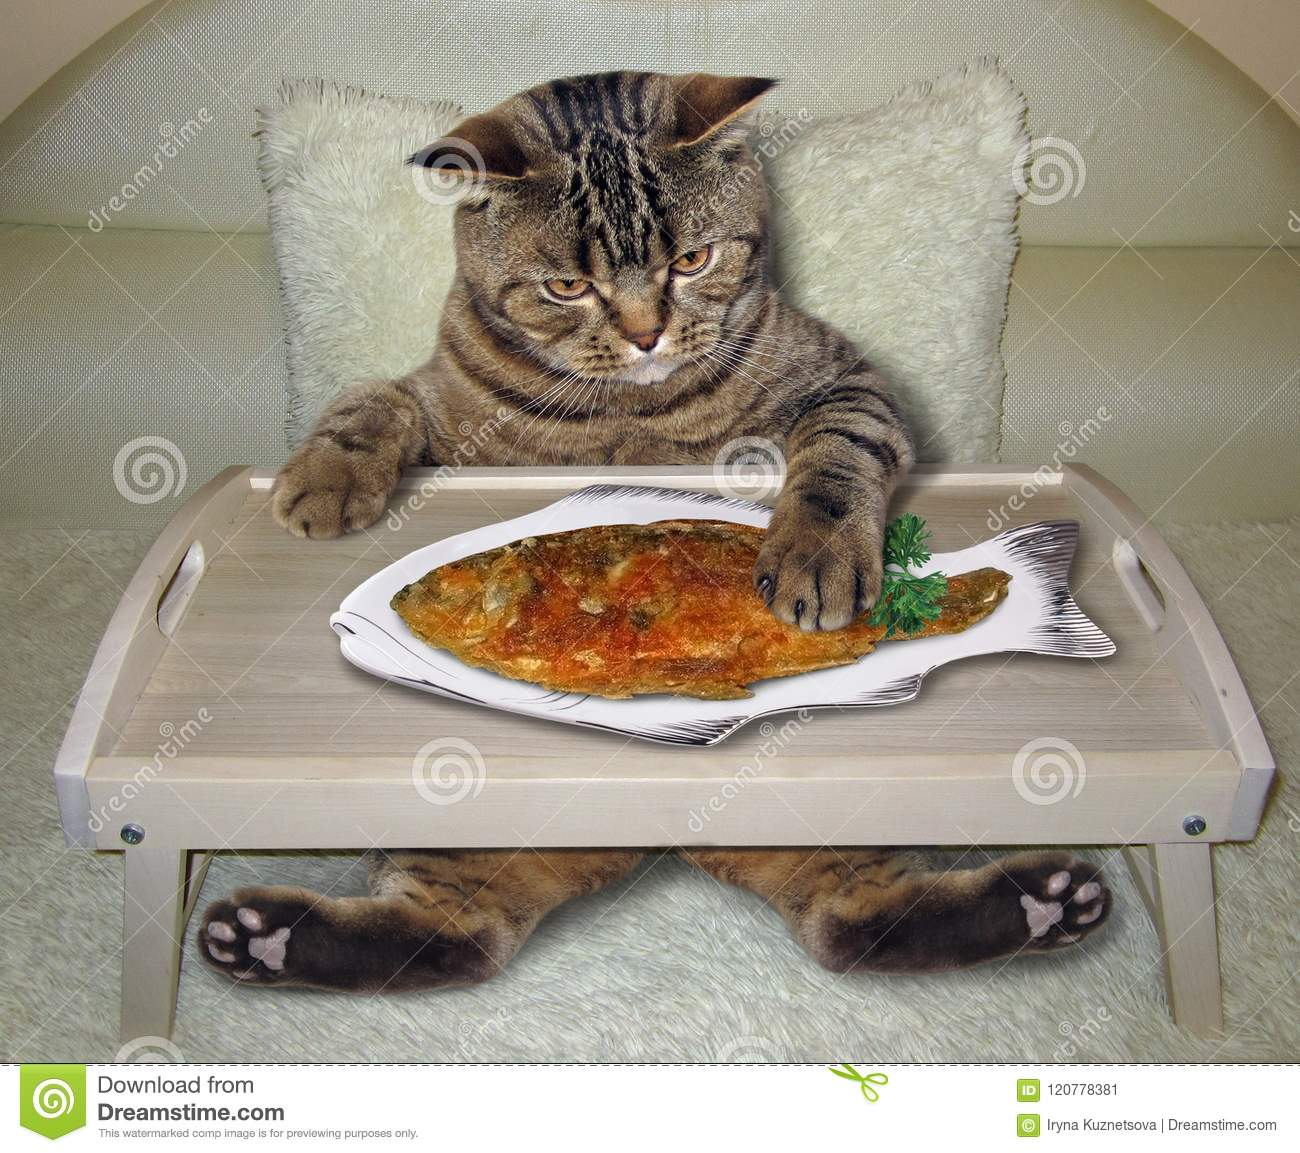 Cat eats fried fish on the bed